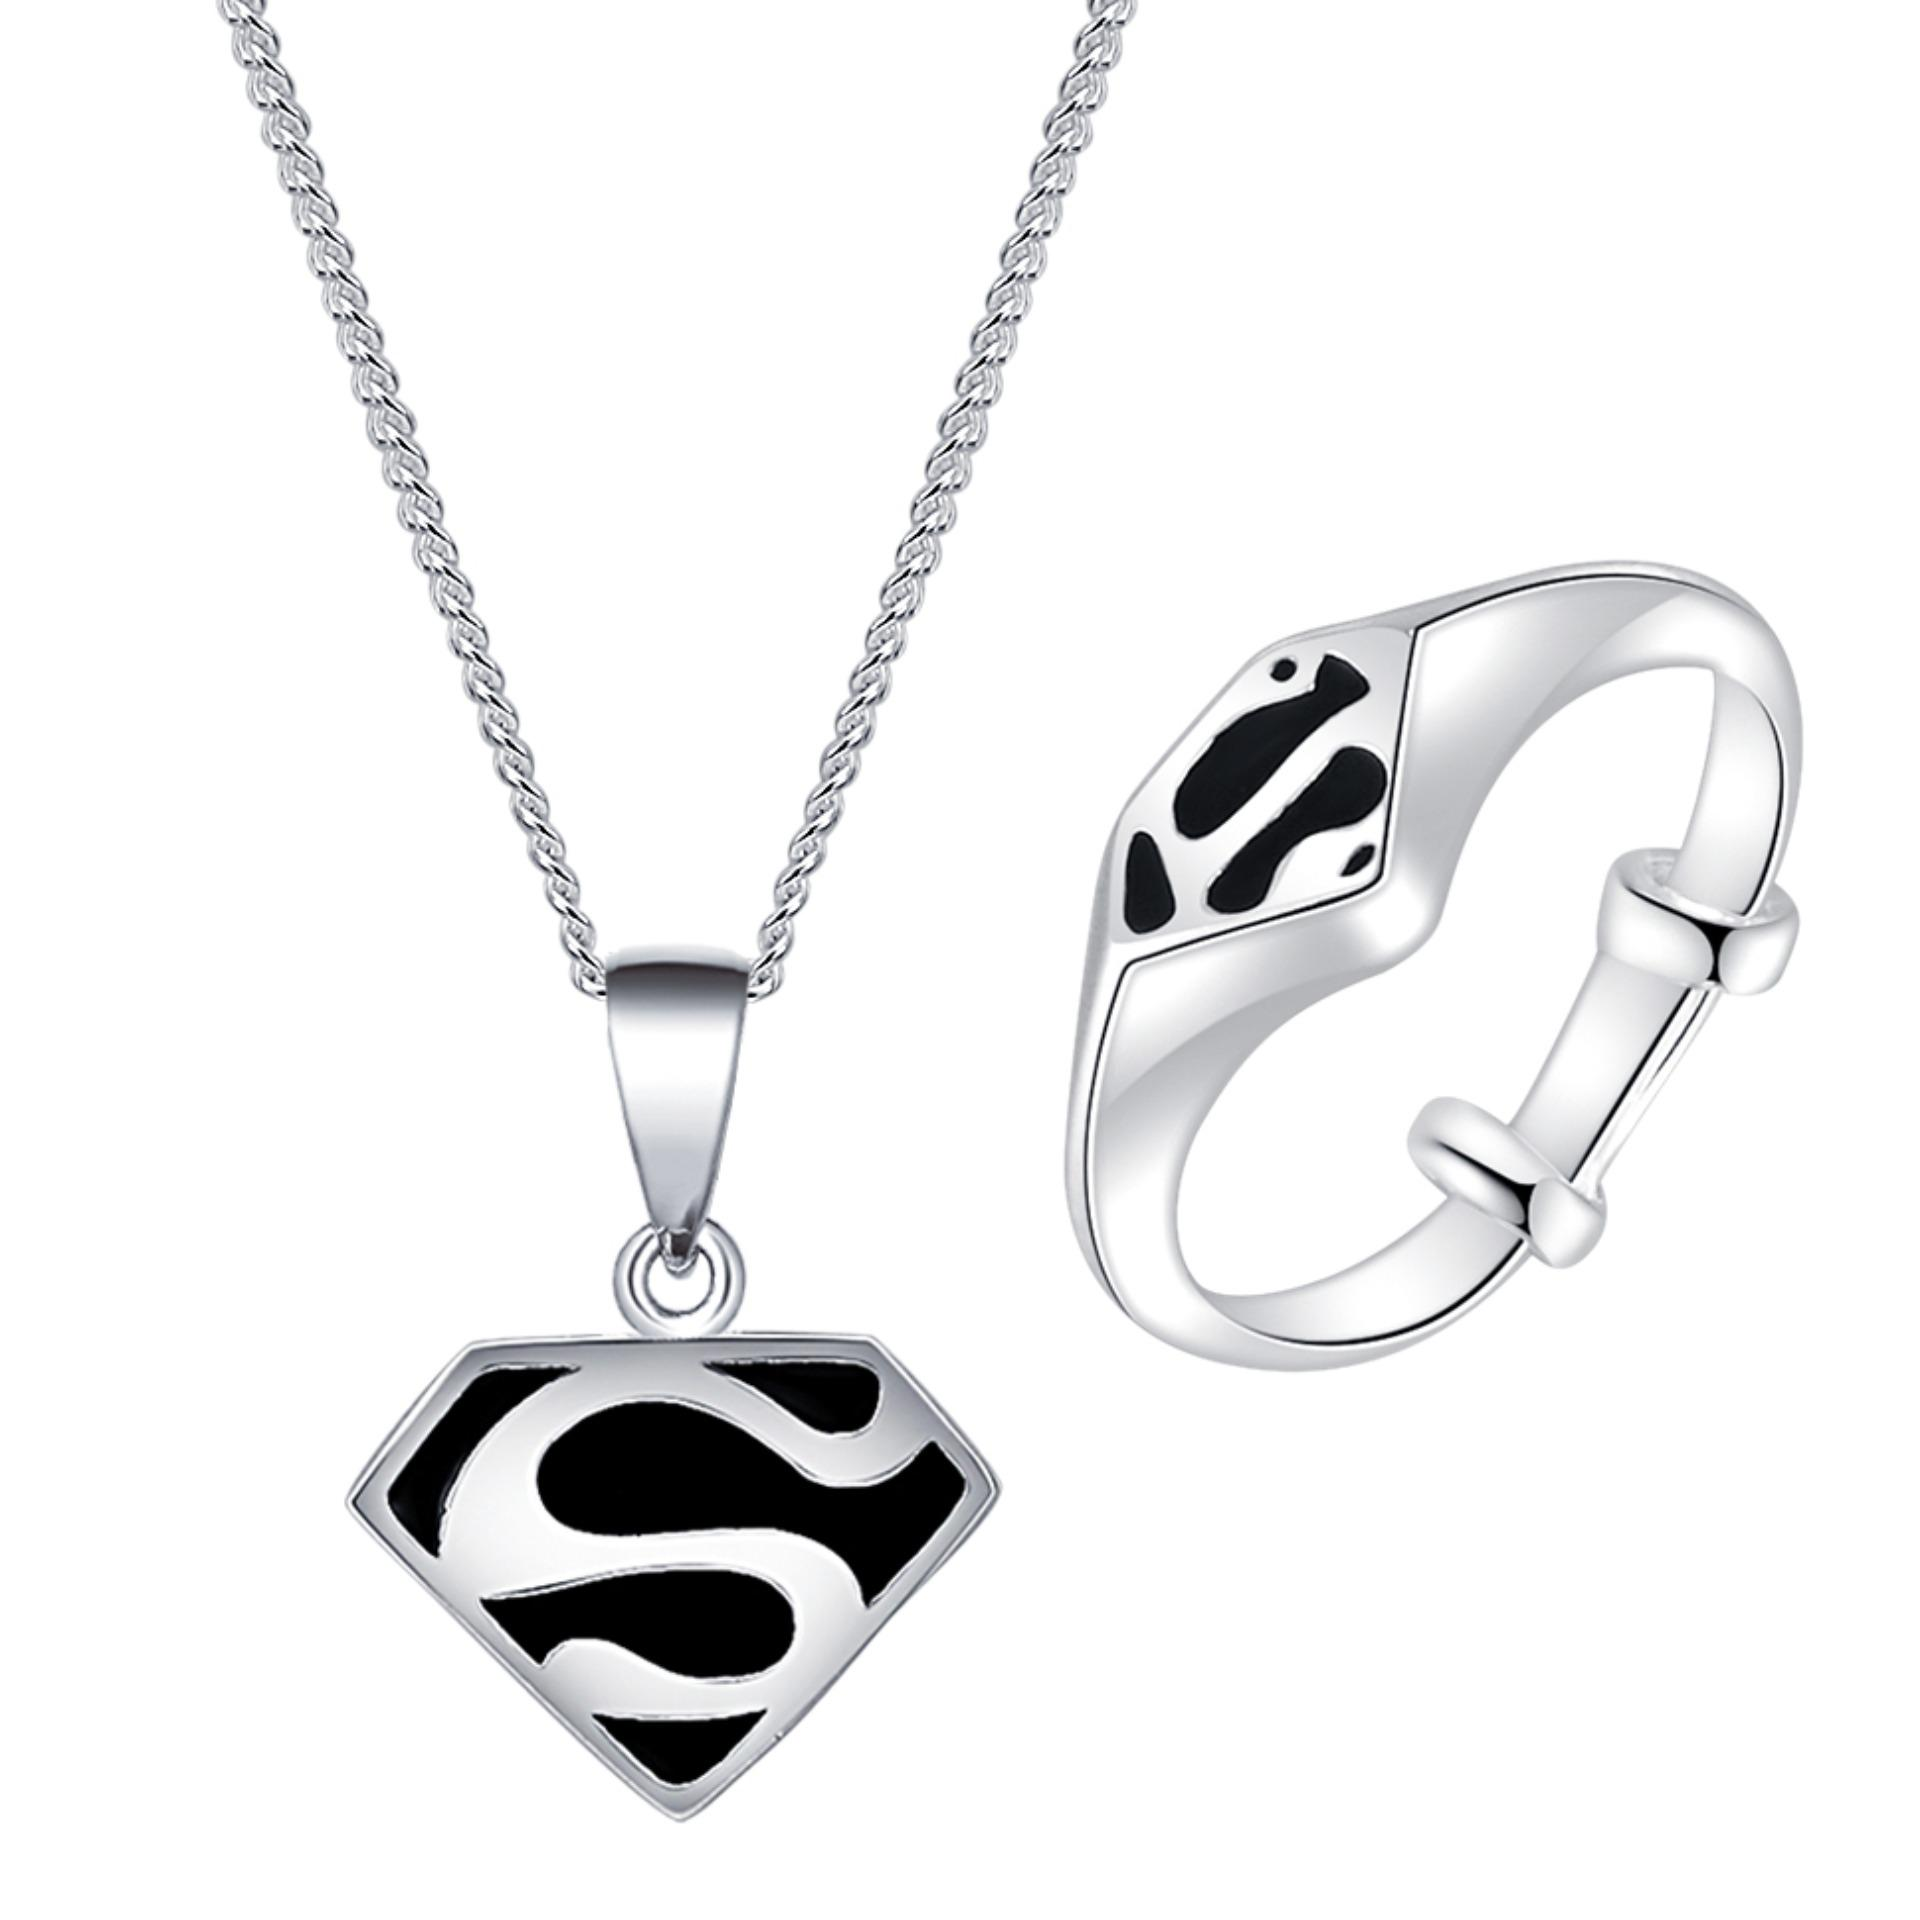 6576ecd9d Jewelry Sets for sale - Fashion Jewelry Sets online brands, prices ...